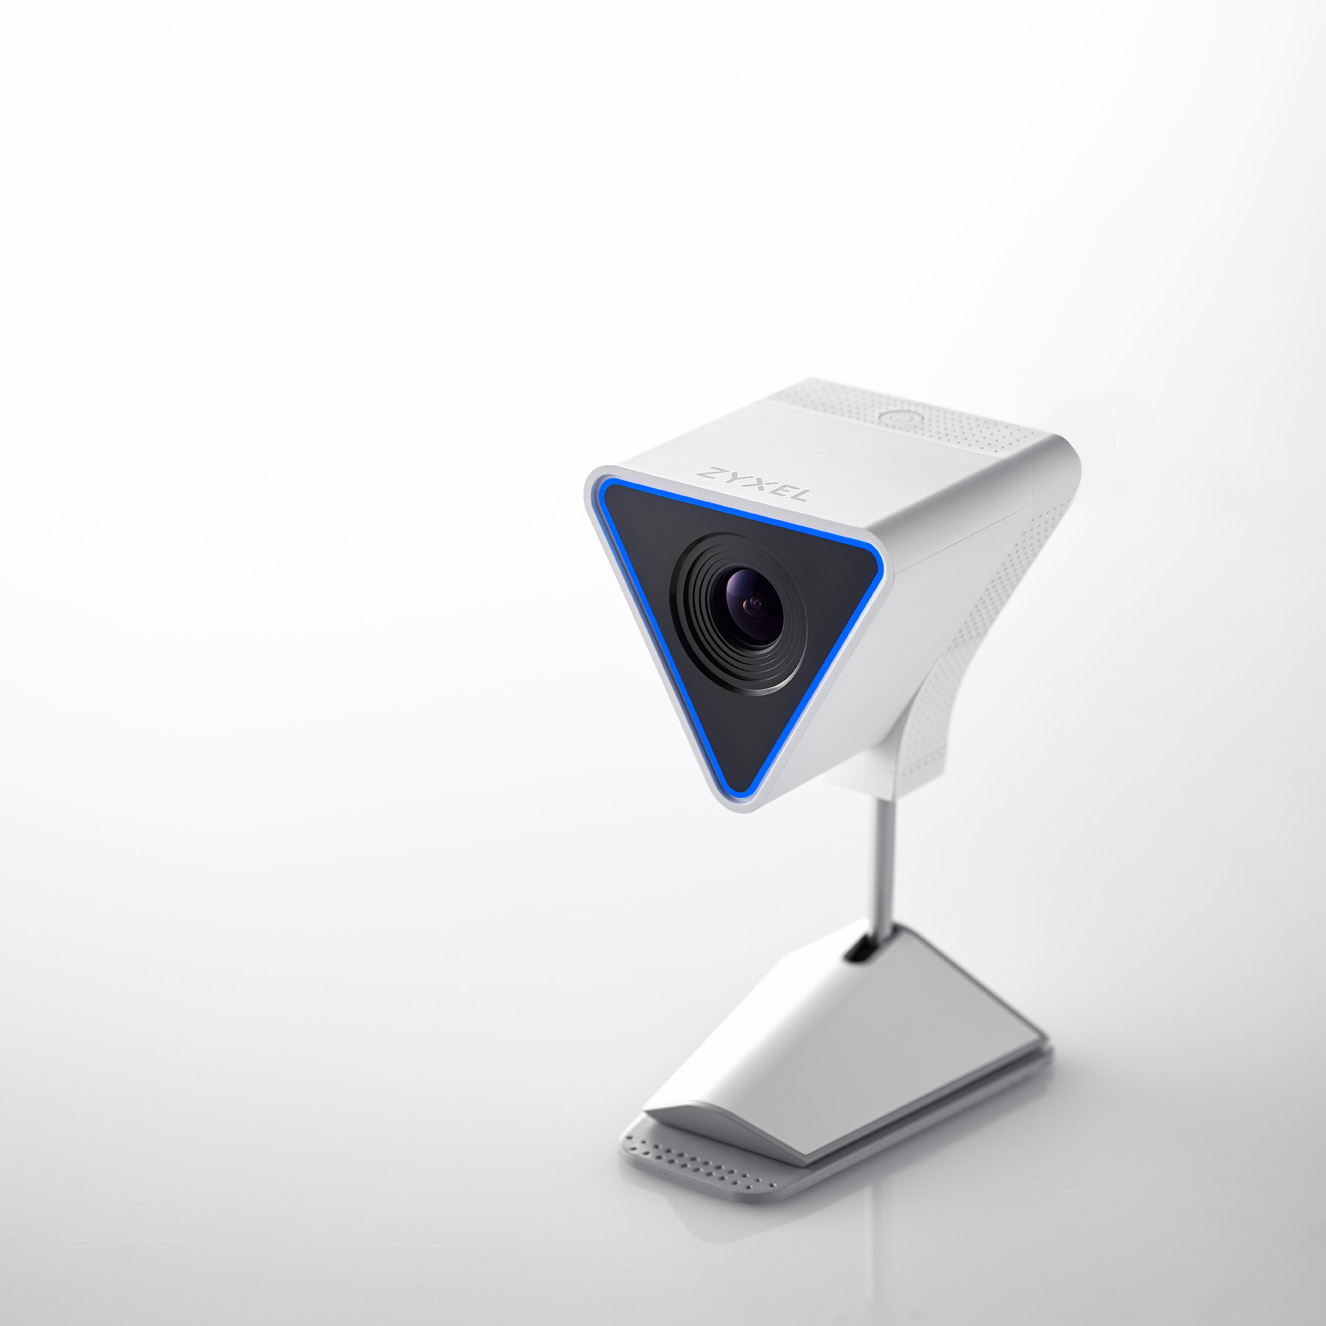 Aurora cloud access camera